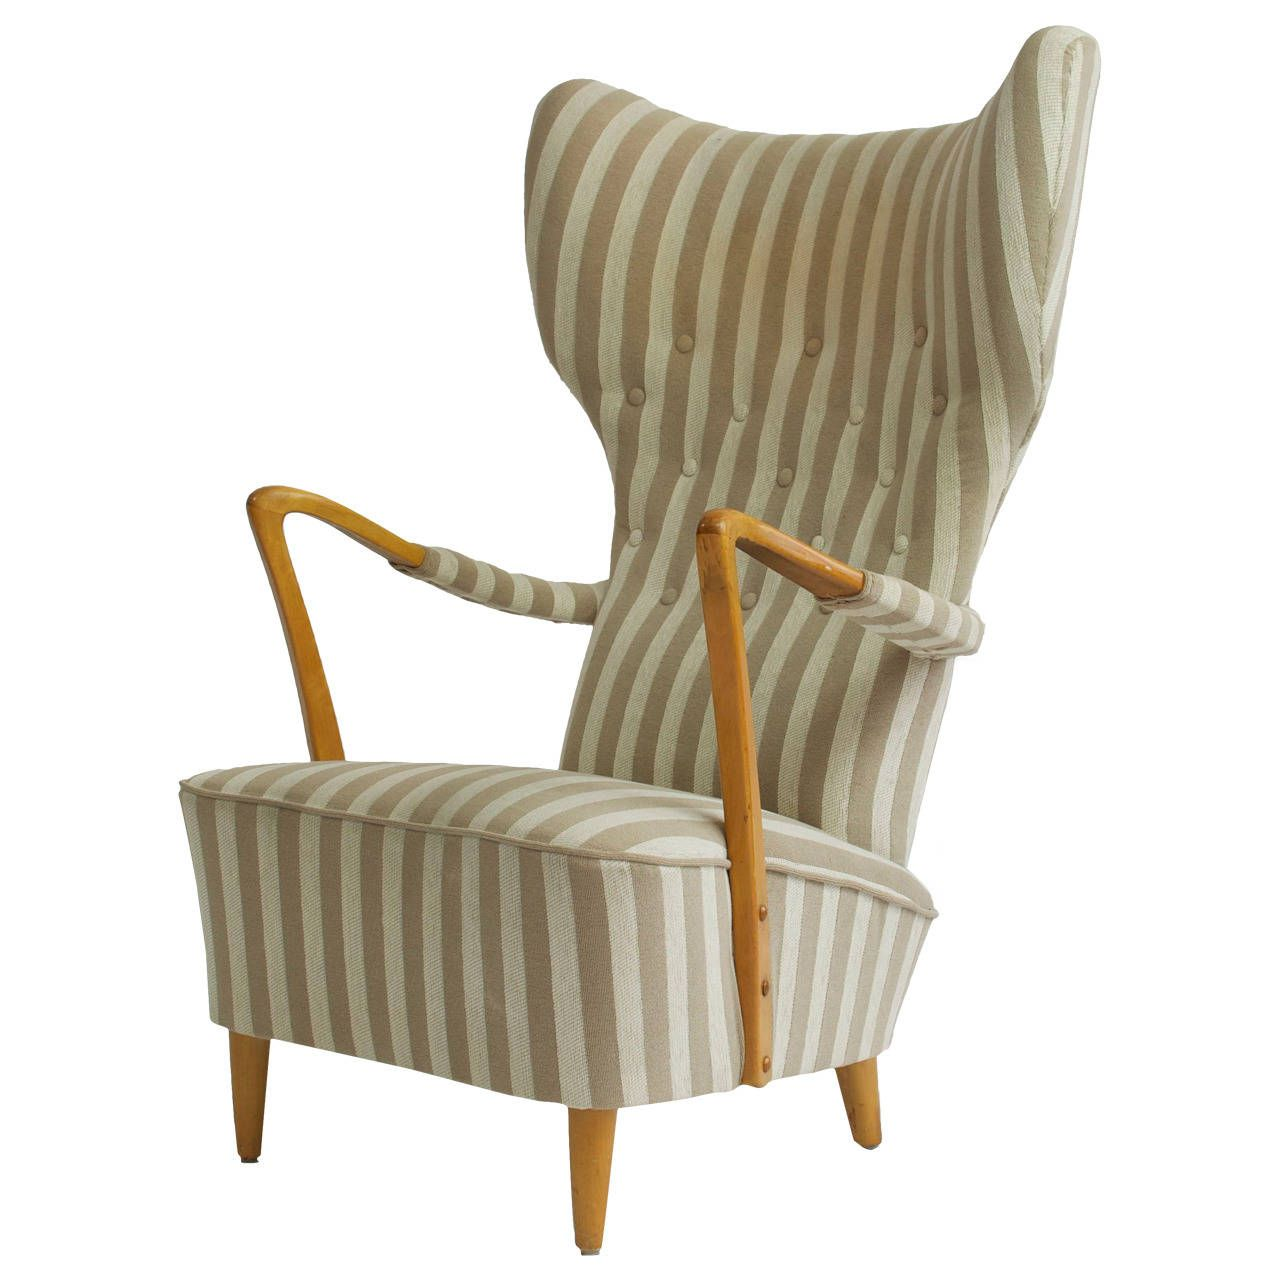 Marvelous 1950s High Back Swedish Lounge Chair And Ottoman